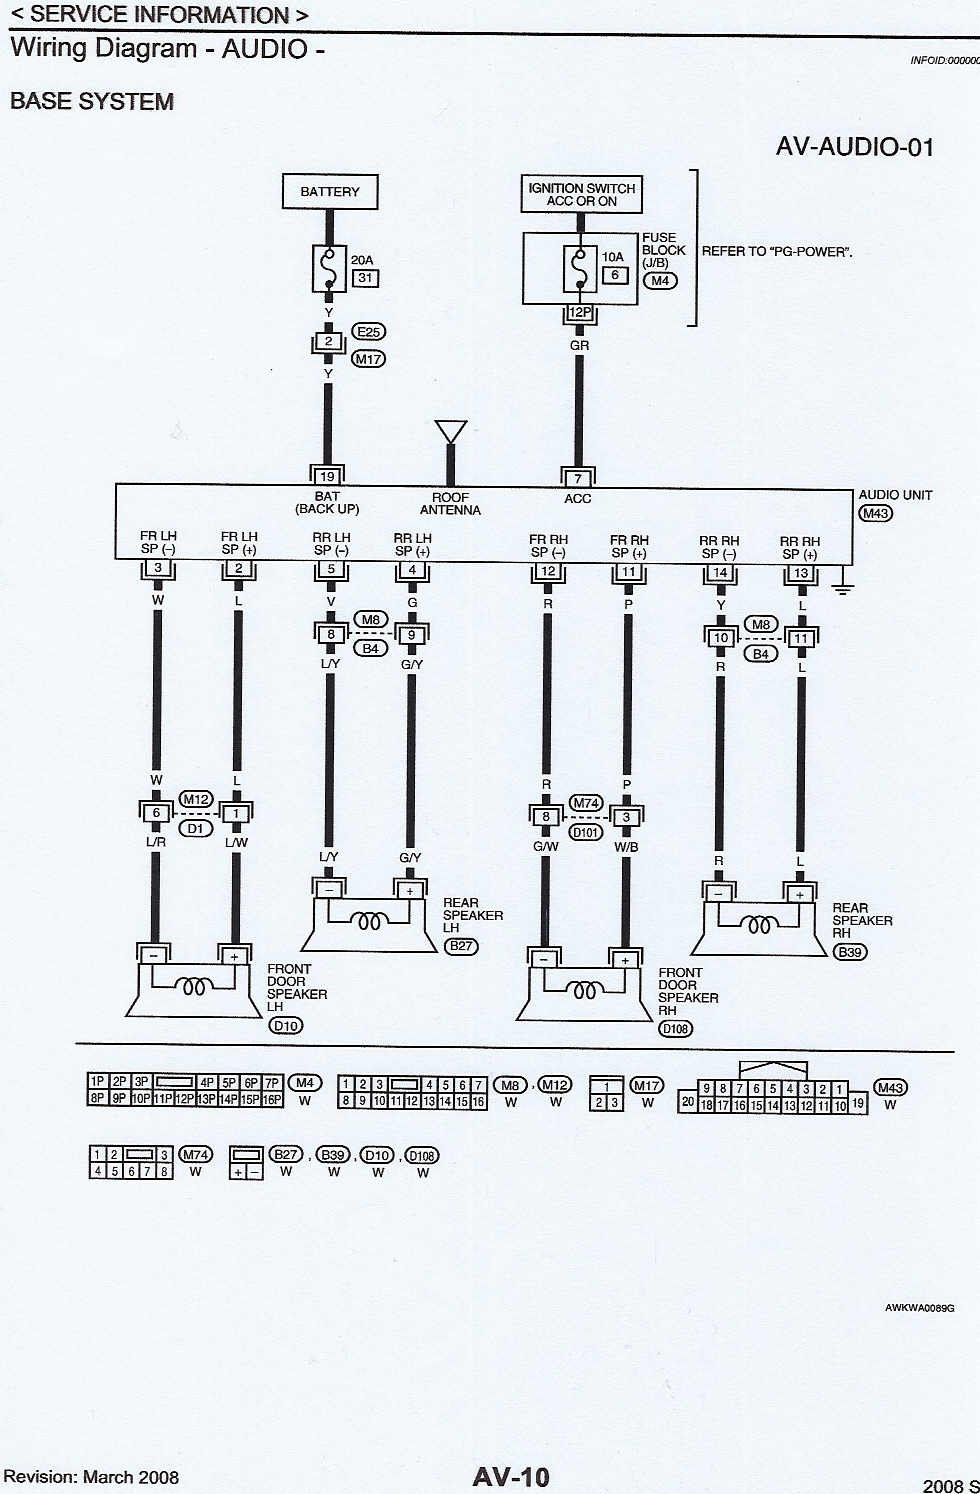 Wiring Diagram For 2008 Nissan Titan : Nissan sentra s i had a after market head unit